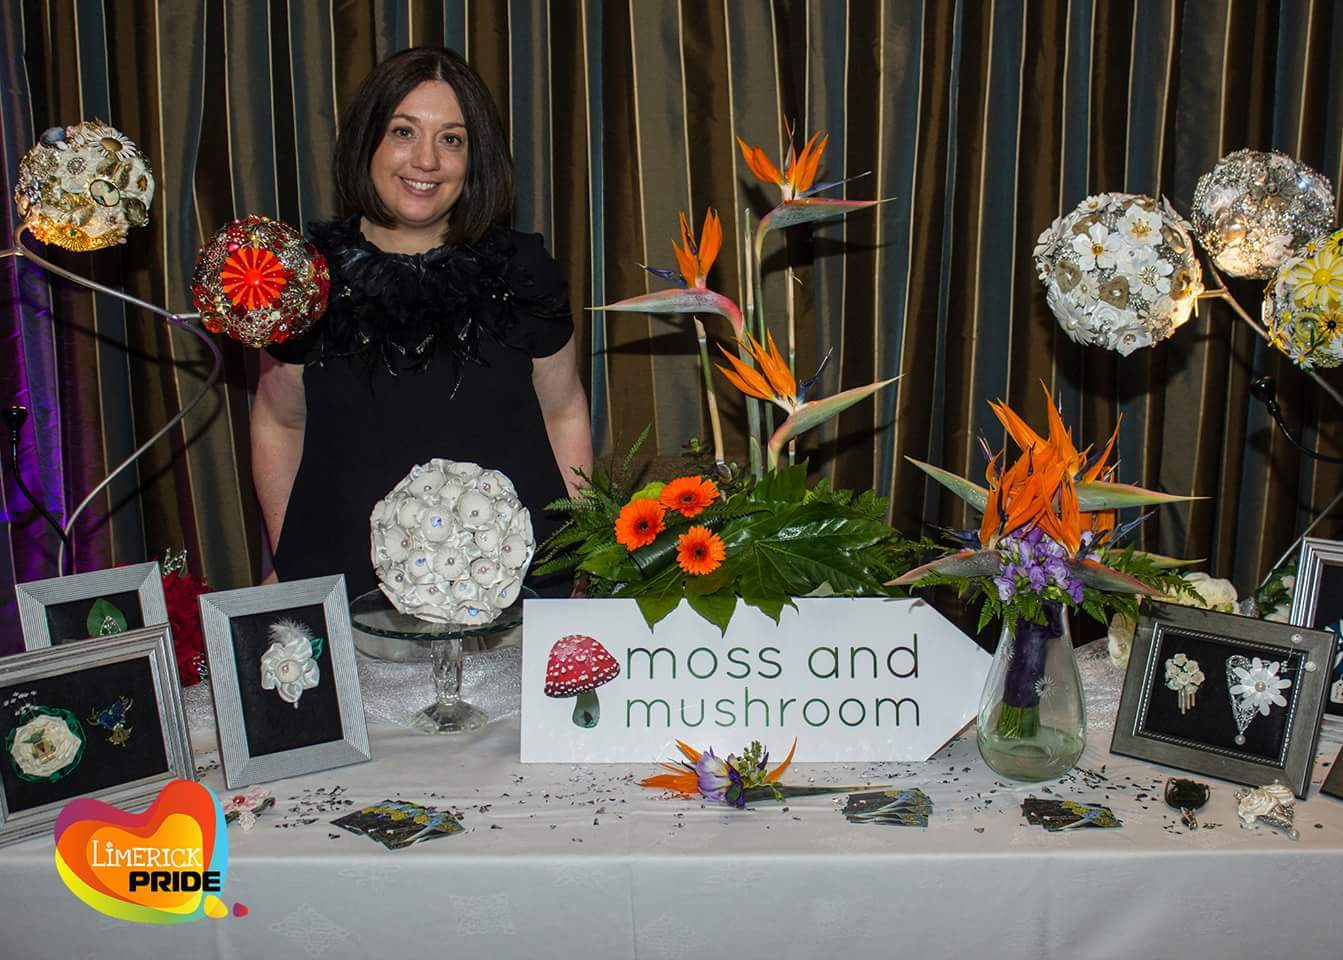 My name is Liza Keane, - and I live in beautiful Ballina/Killaloe, on the shores of Lough Derg in north County Tipperary, with my husband, our triplets and our 3 cats.  After working in science and publishing for over 15 years, I decided to re-train as a florist, and I established moss and mushroom in 2013.  Specialising in wedding floristry and heirloom bouquets, I now transform fresh flowers, jewellery, ceramics, metal, fabric and other materials into distinctive bouquets, arrangements and accessories for weddings and other events.I source flowers and other materials from all over the world, but I especially love to work with local Irish flower growers, and craftspeople.  I always aim to ensure that brides and grooms enjoy the process of choosing the look for their big day, and that their choices truly reflect their taste and personality.If you would like to have a chat with me about your wedding or other event, send me a message via the